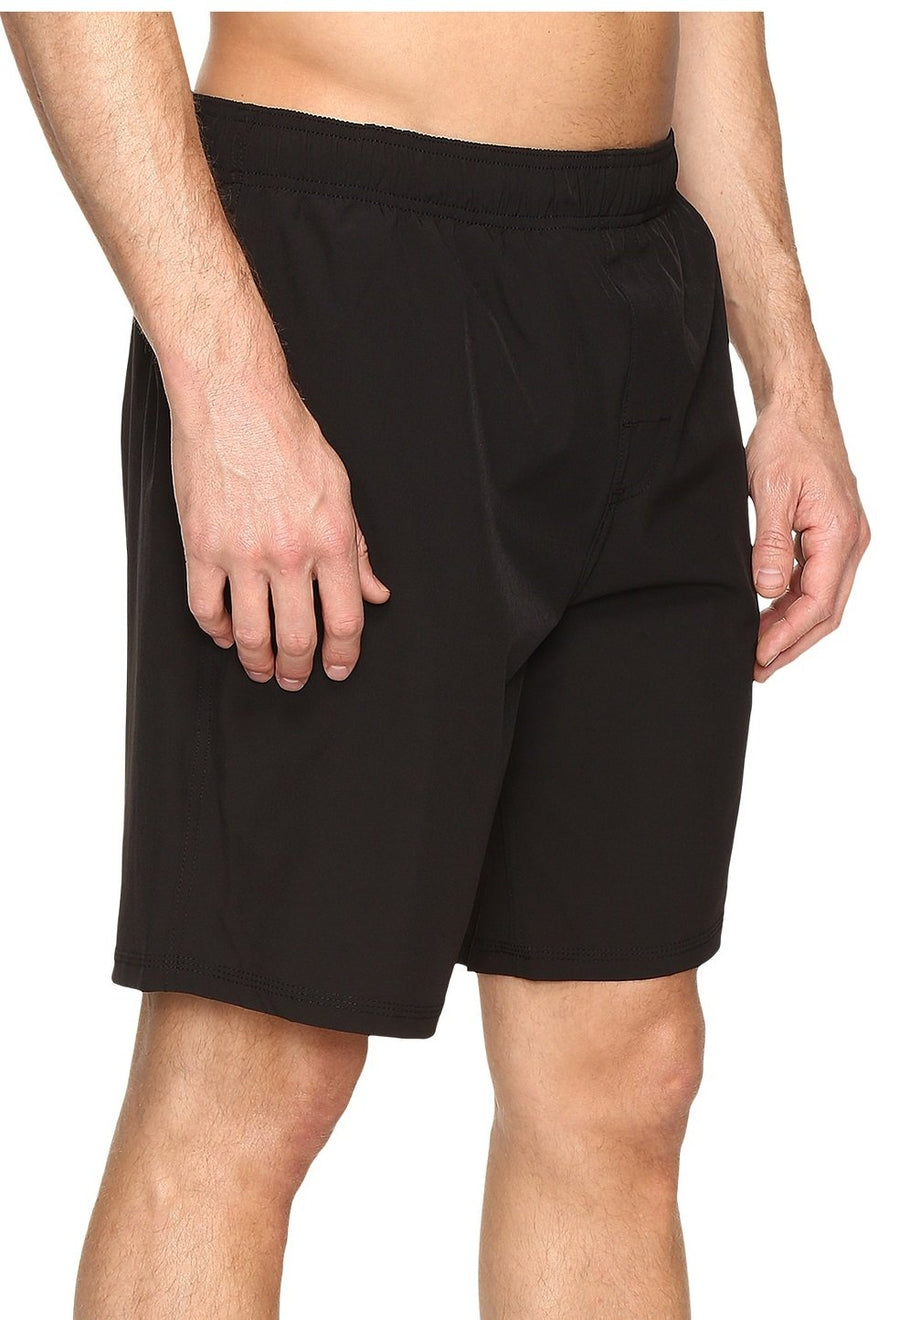 Body Glove Freestyle Volleys Boardshorts - shaymartian